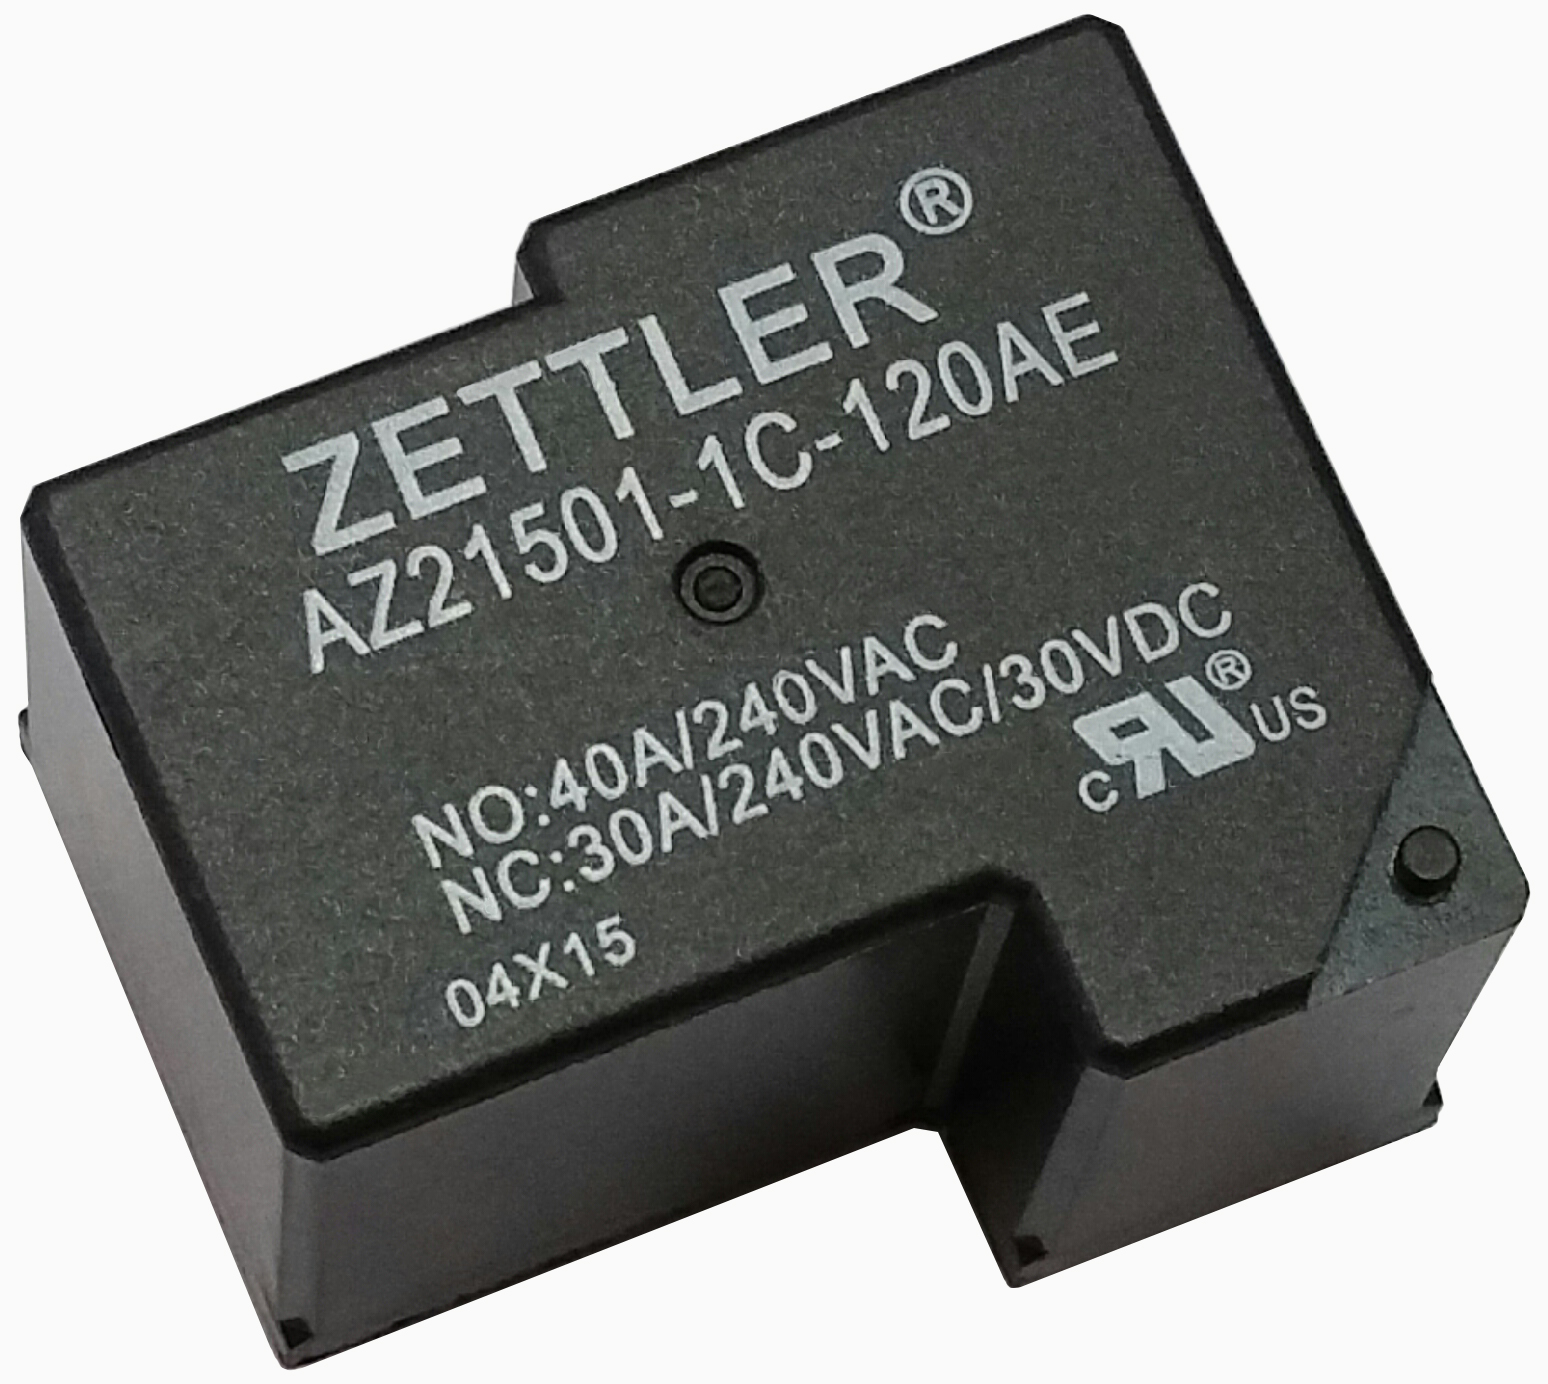 Press Releases American Zettler Inc Solid State Relay Market Power Relays Component Solutions For Pool Pump And Spa Control Applications